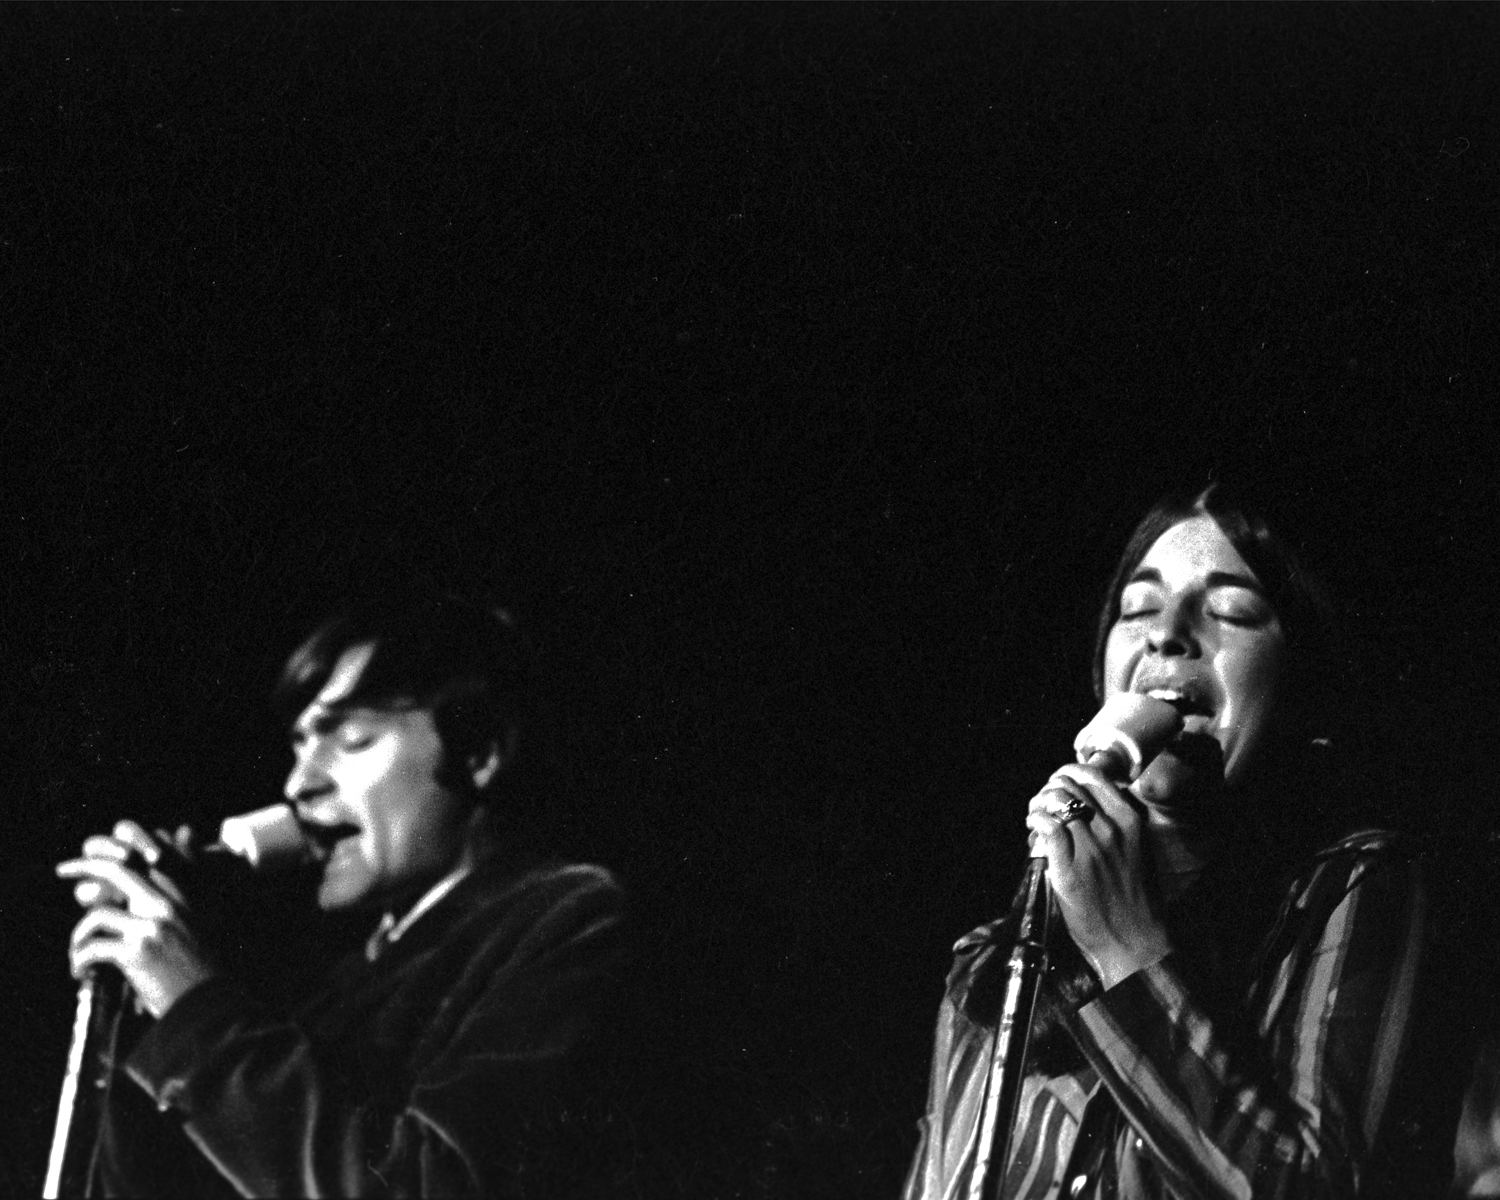 Marty Balin (left) and Signe Anderson (right) singing their hearts out at Stanford University, 1966